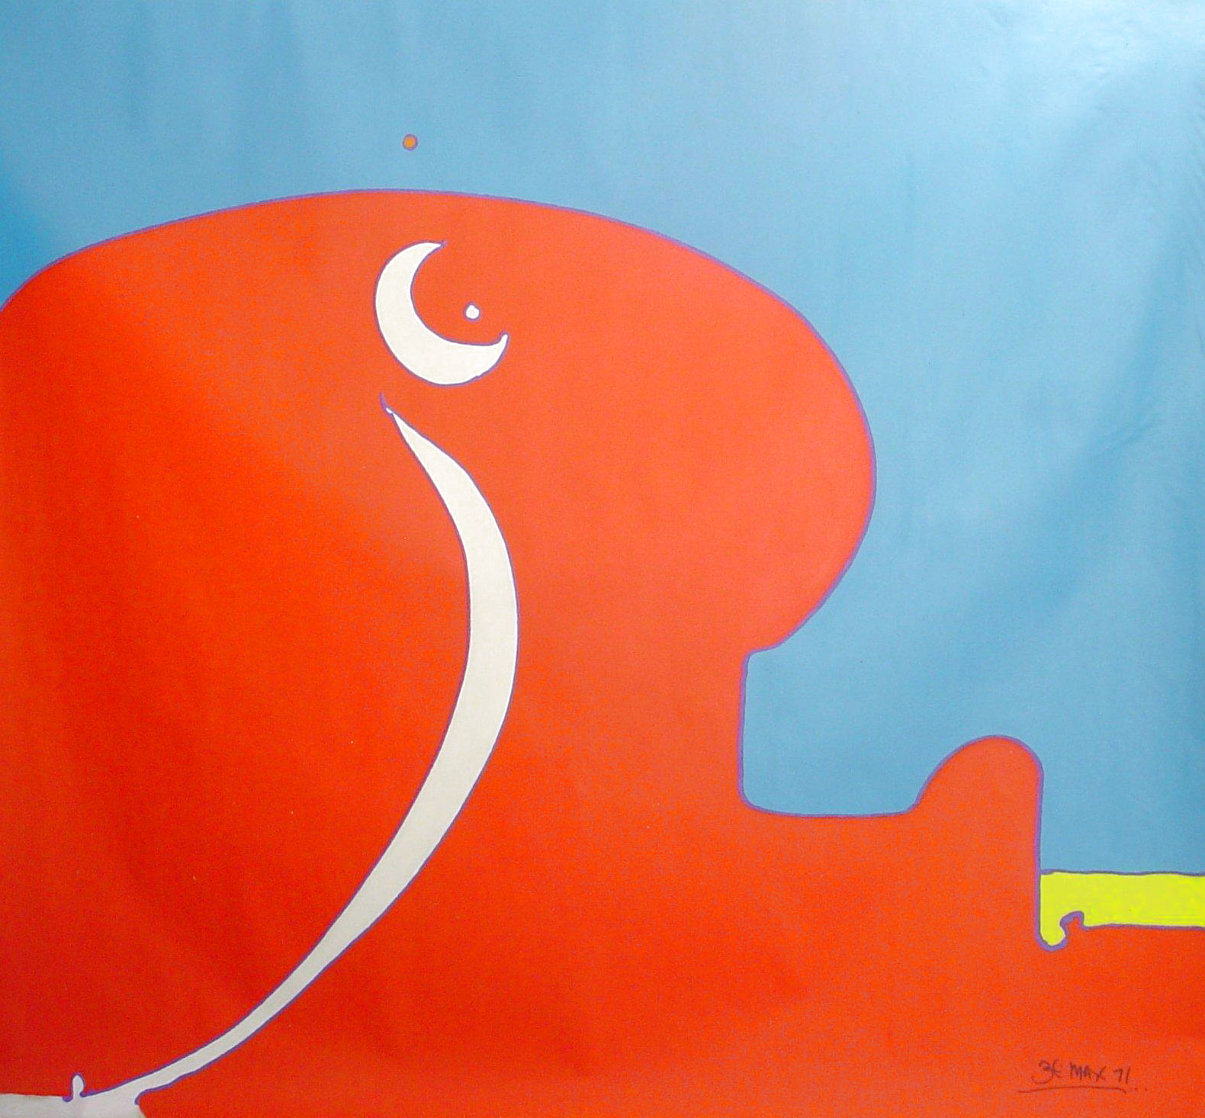 Abstract II Vintage Acrylic 96x108 in 1970 Super Huge Original Painting by Peter Max